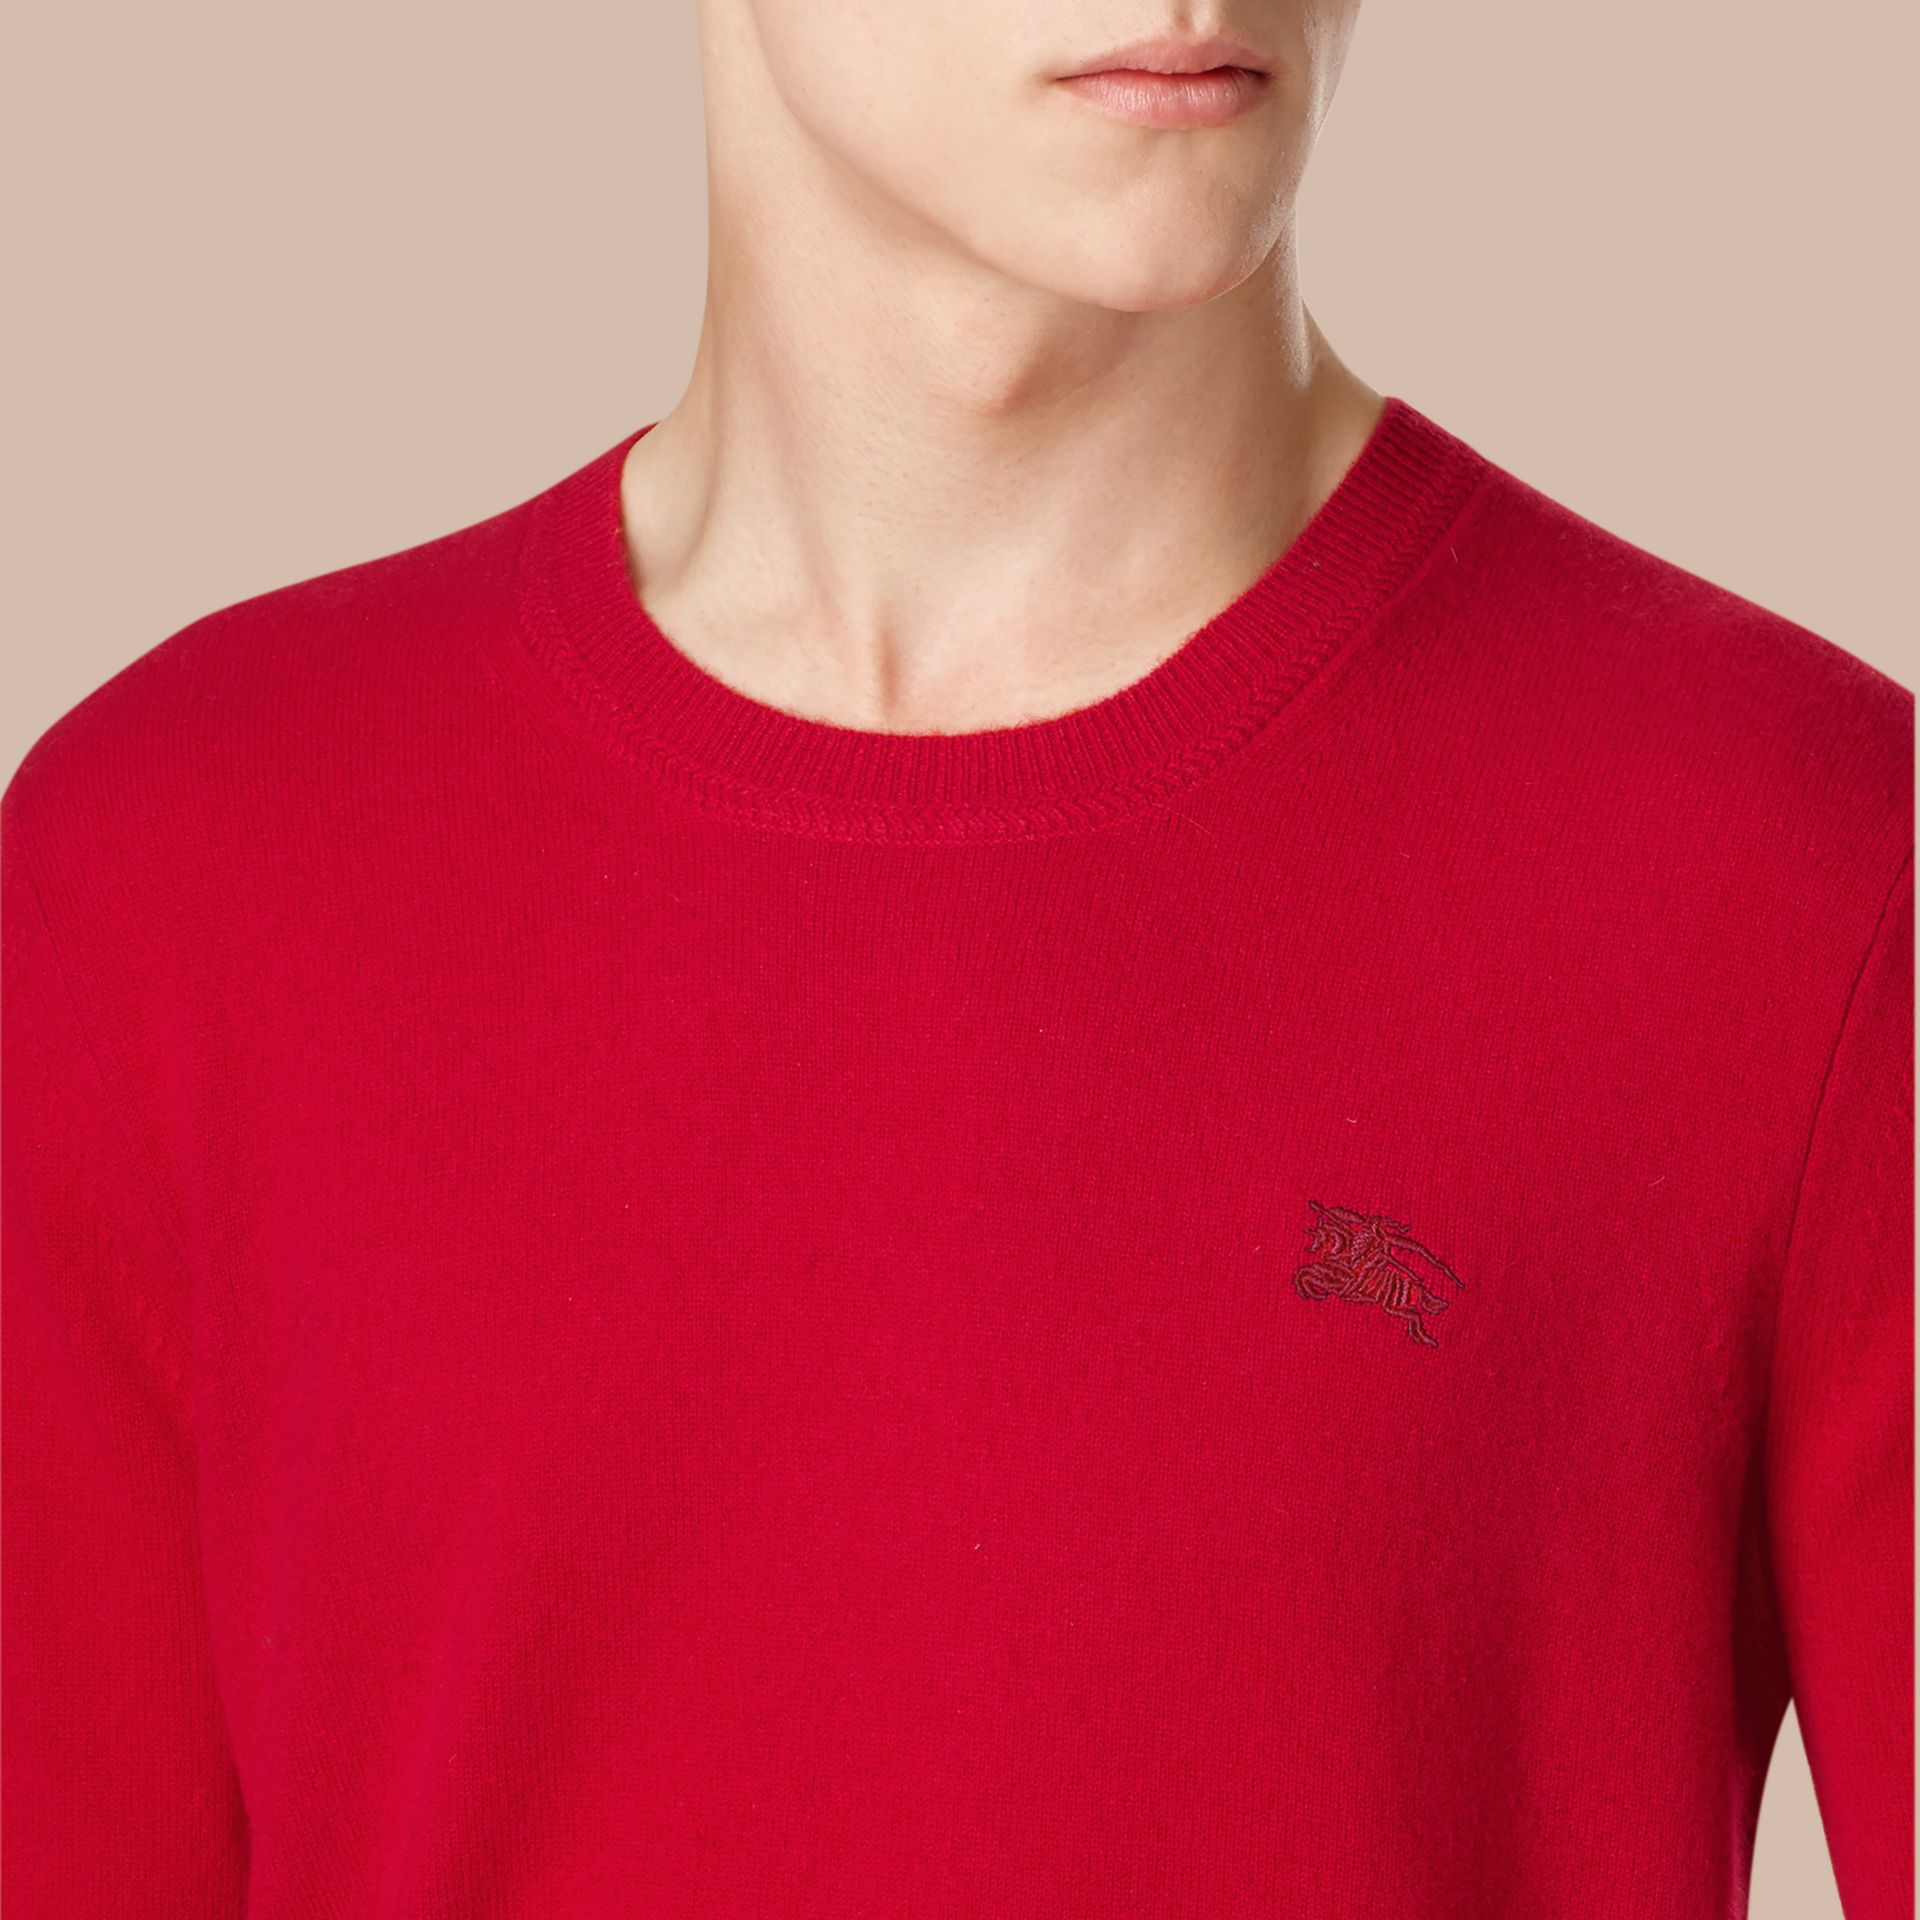 Crew Neck Cashmere Sweater in Military Red - Men | Burberry - gallery image 2